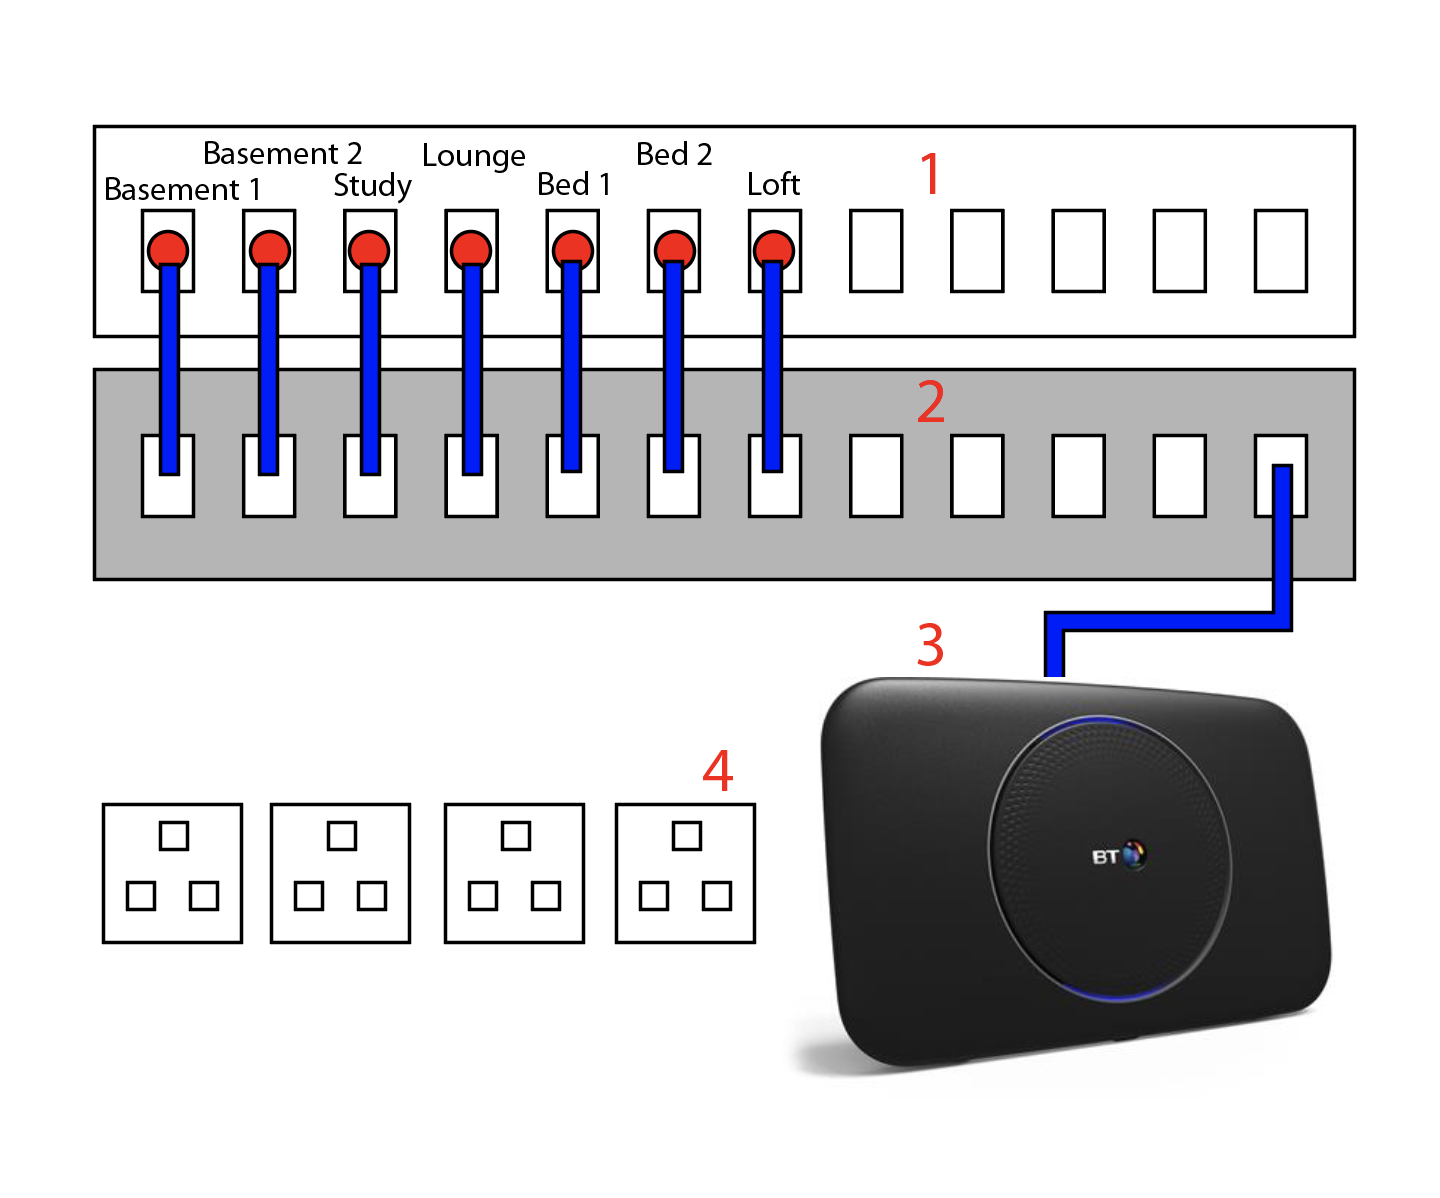 Ethernet Patch Panel Wiring Diagram Example from macthing.co.uk